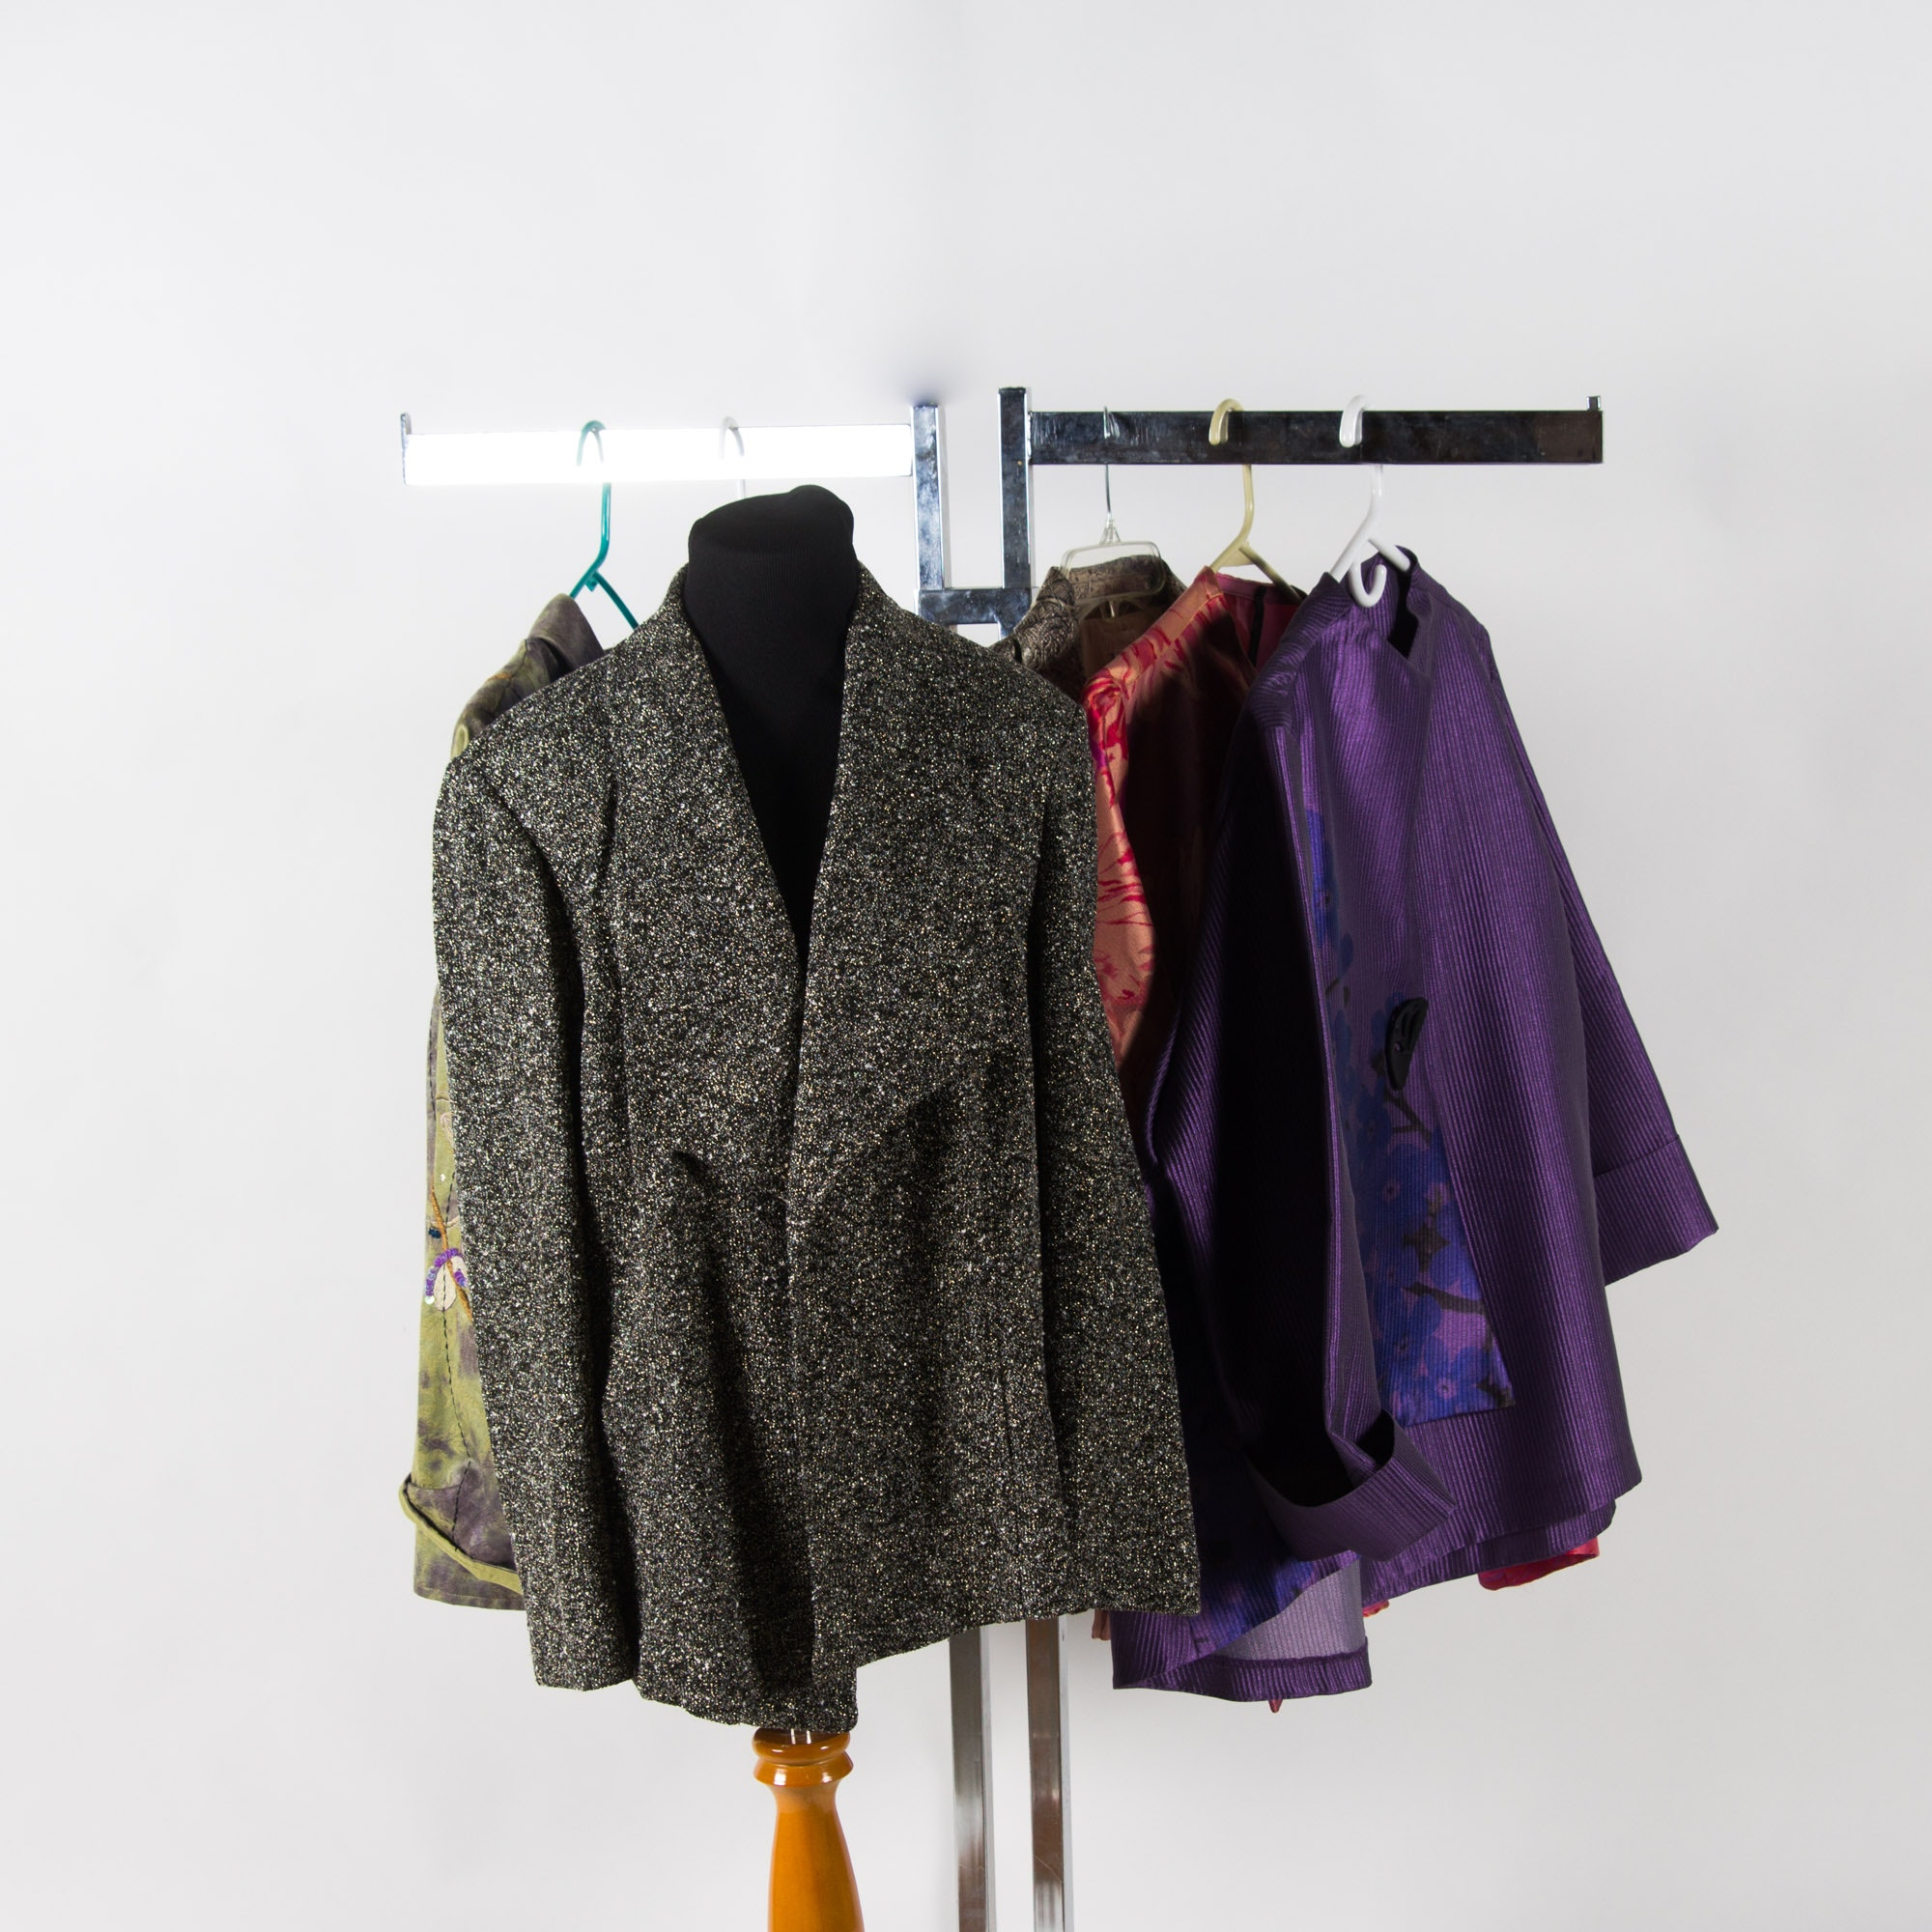 Assortment of Women's Dress Jackets Including Indigo Moon and More